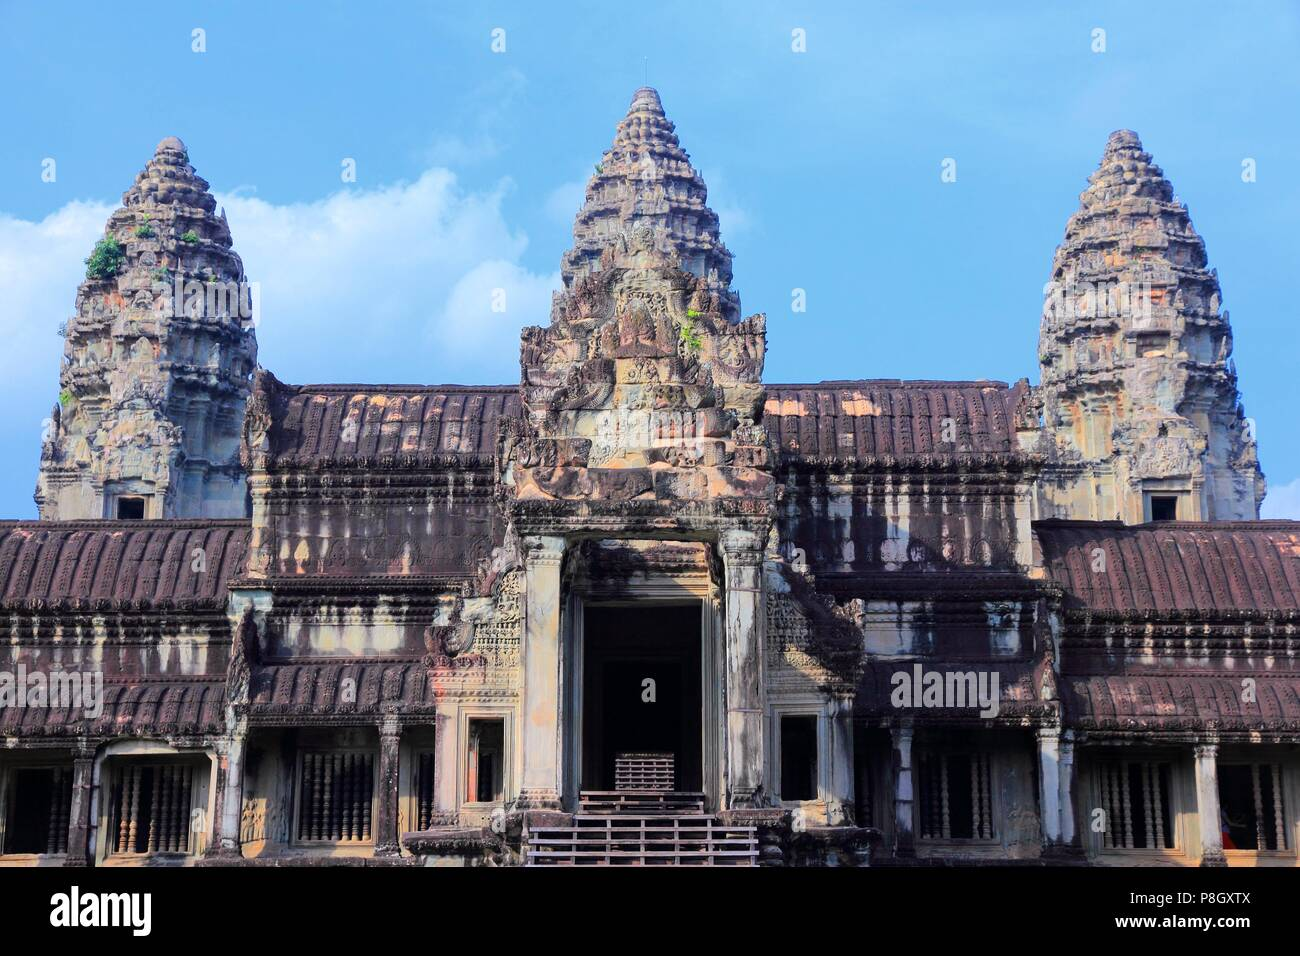 Angkor Wat -  Khmer temple in Siem Reap province, Cambodia, Southeast Asia. UNESCO World Heritage Site. - Stock Image